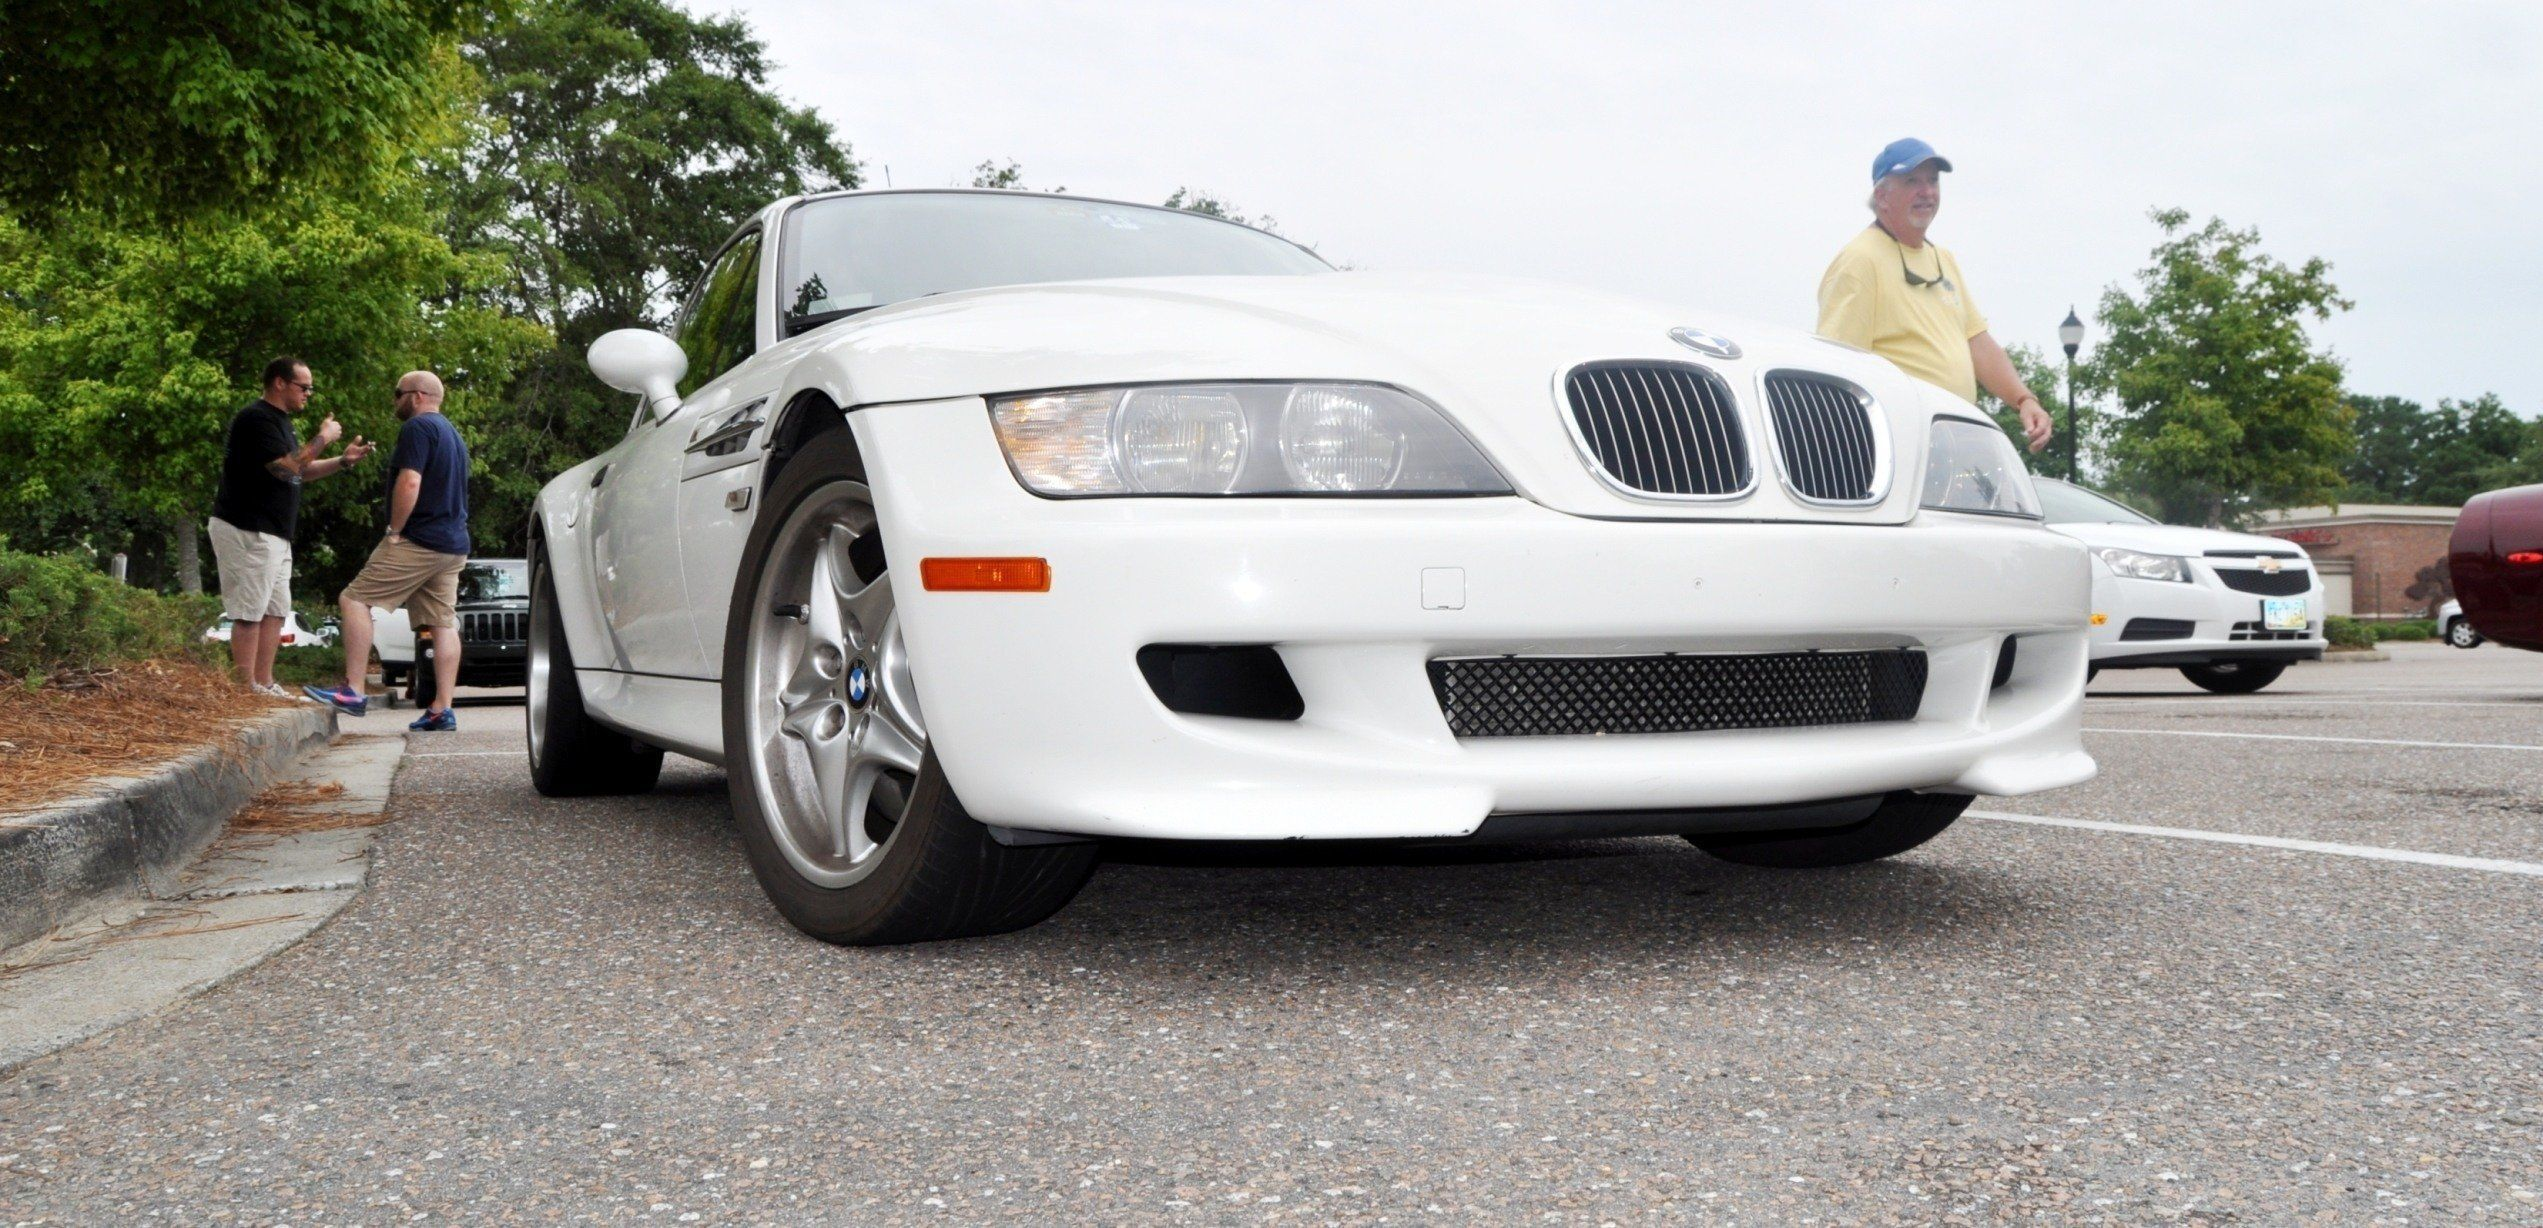 Charleston cars coffee gallery 1999 bmw m coupe - Craigslist farm and garden grand rapids ...